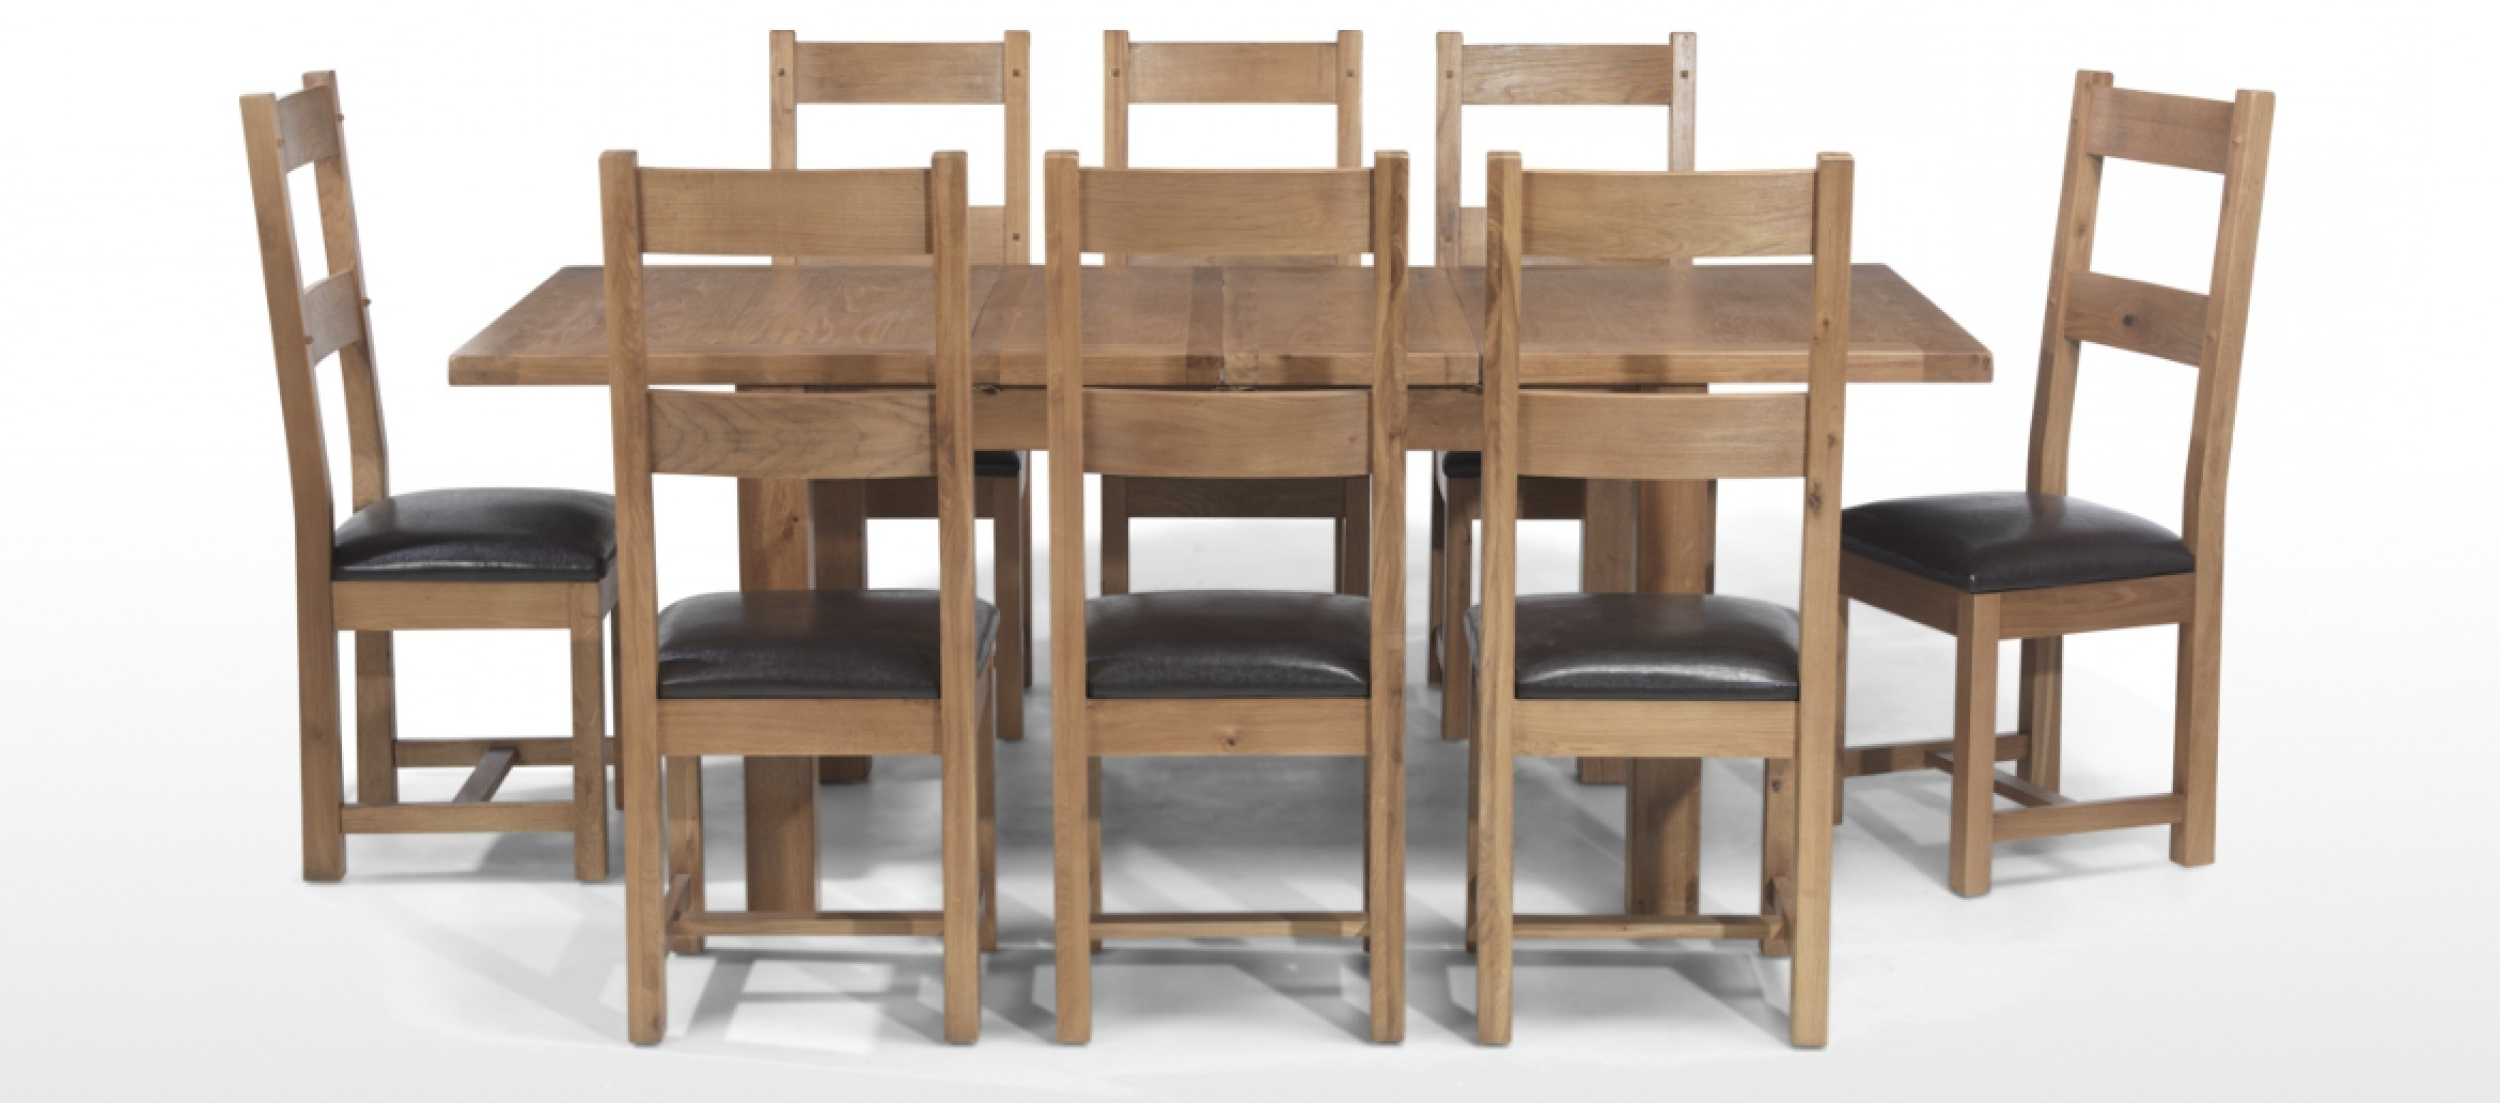 Quercus Pertaining To Dining Tables 8 Chairs (View 19 of 25)